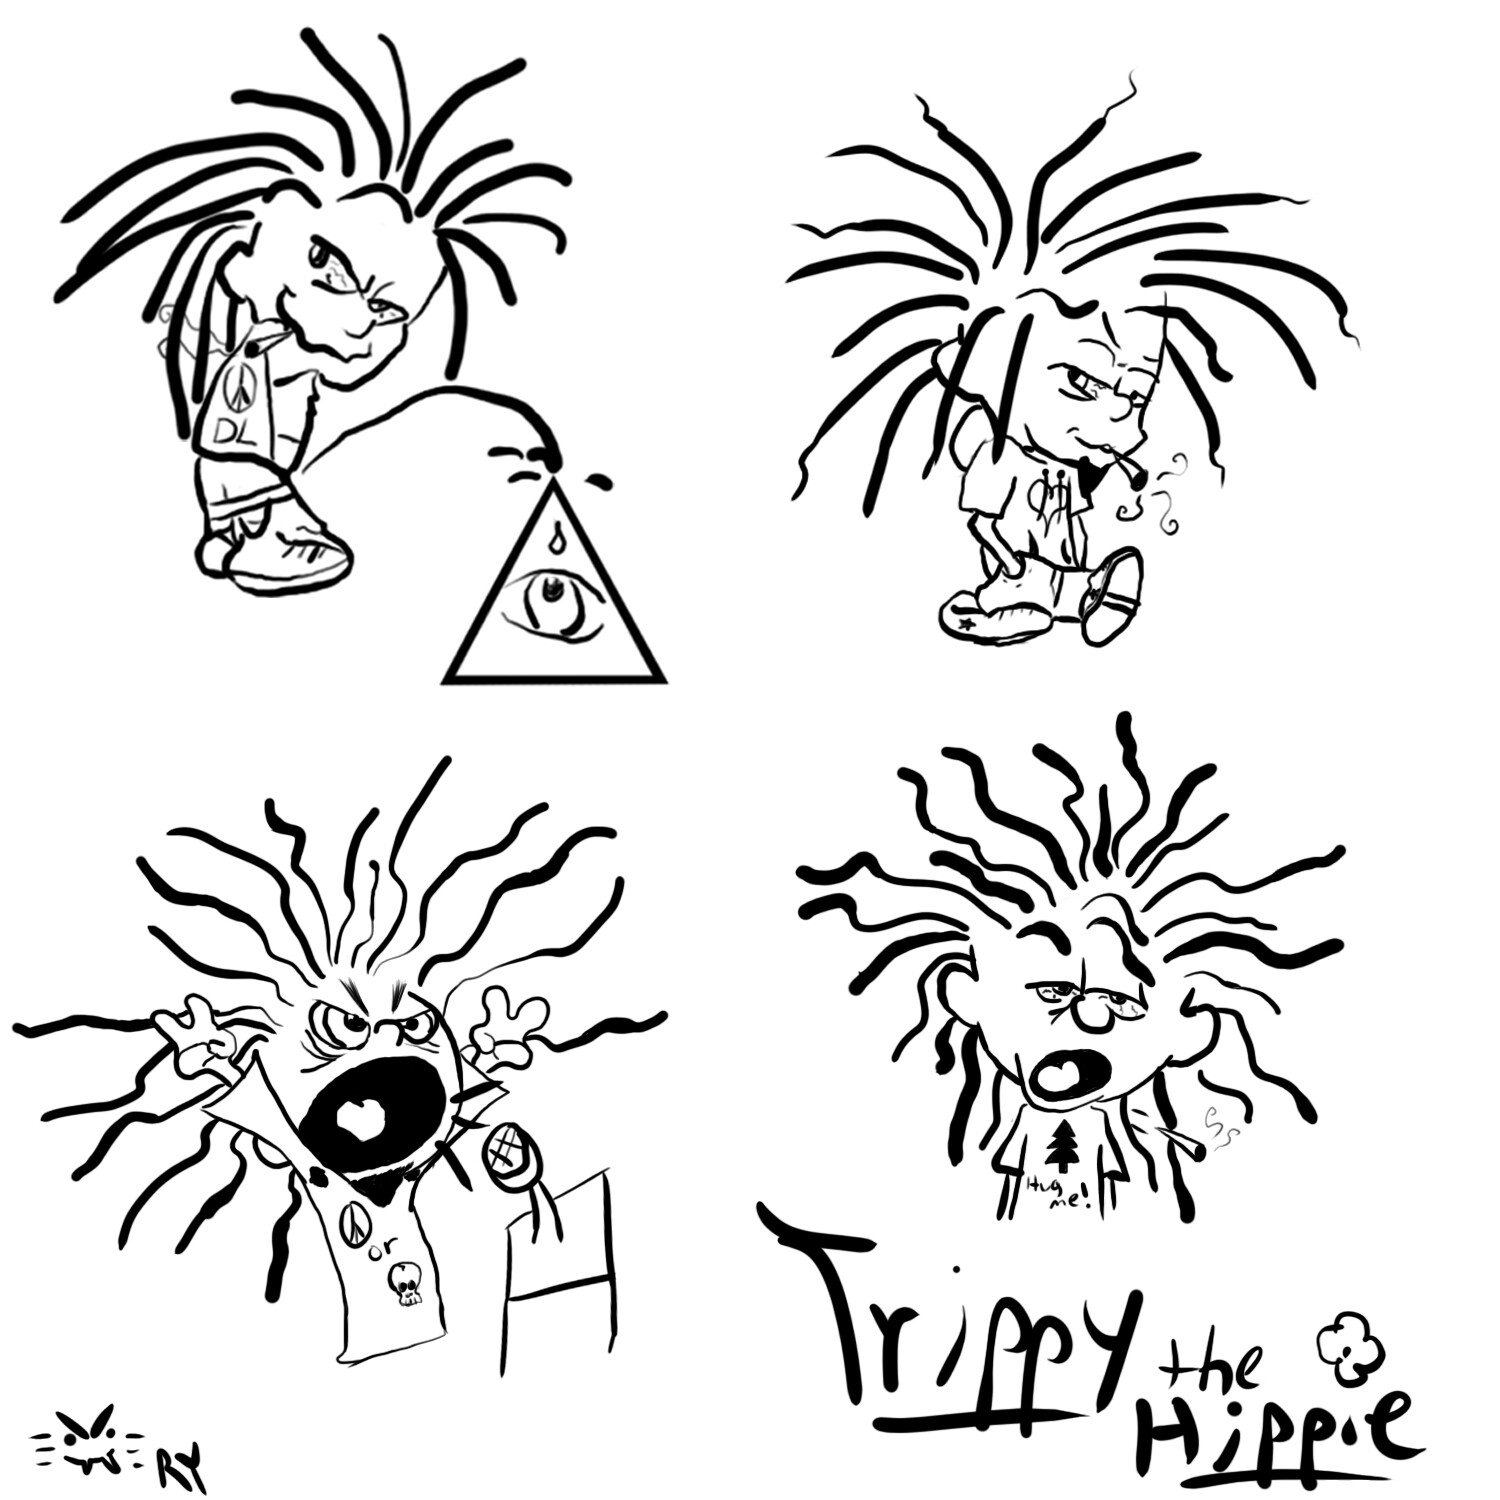 Dread-haired variation of Trippy the Hippy